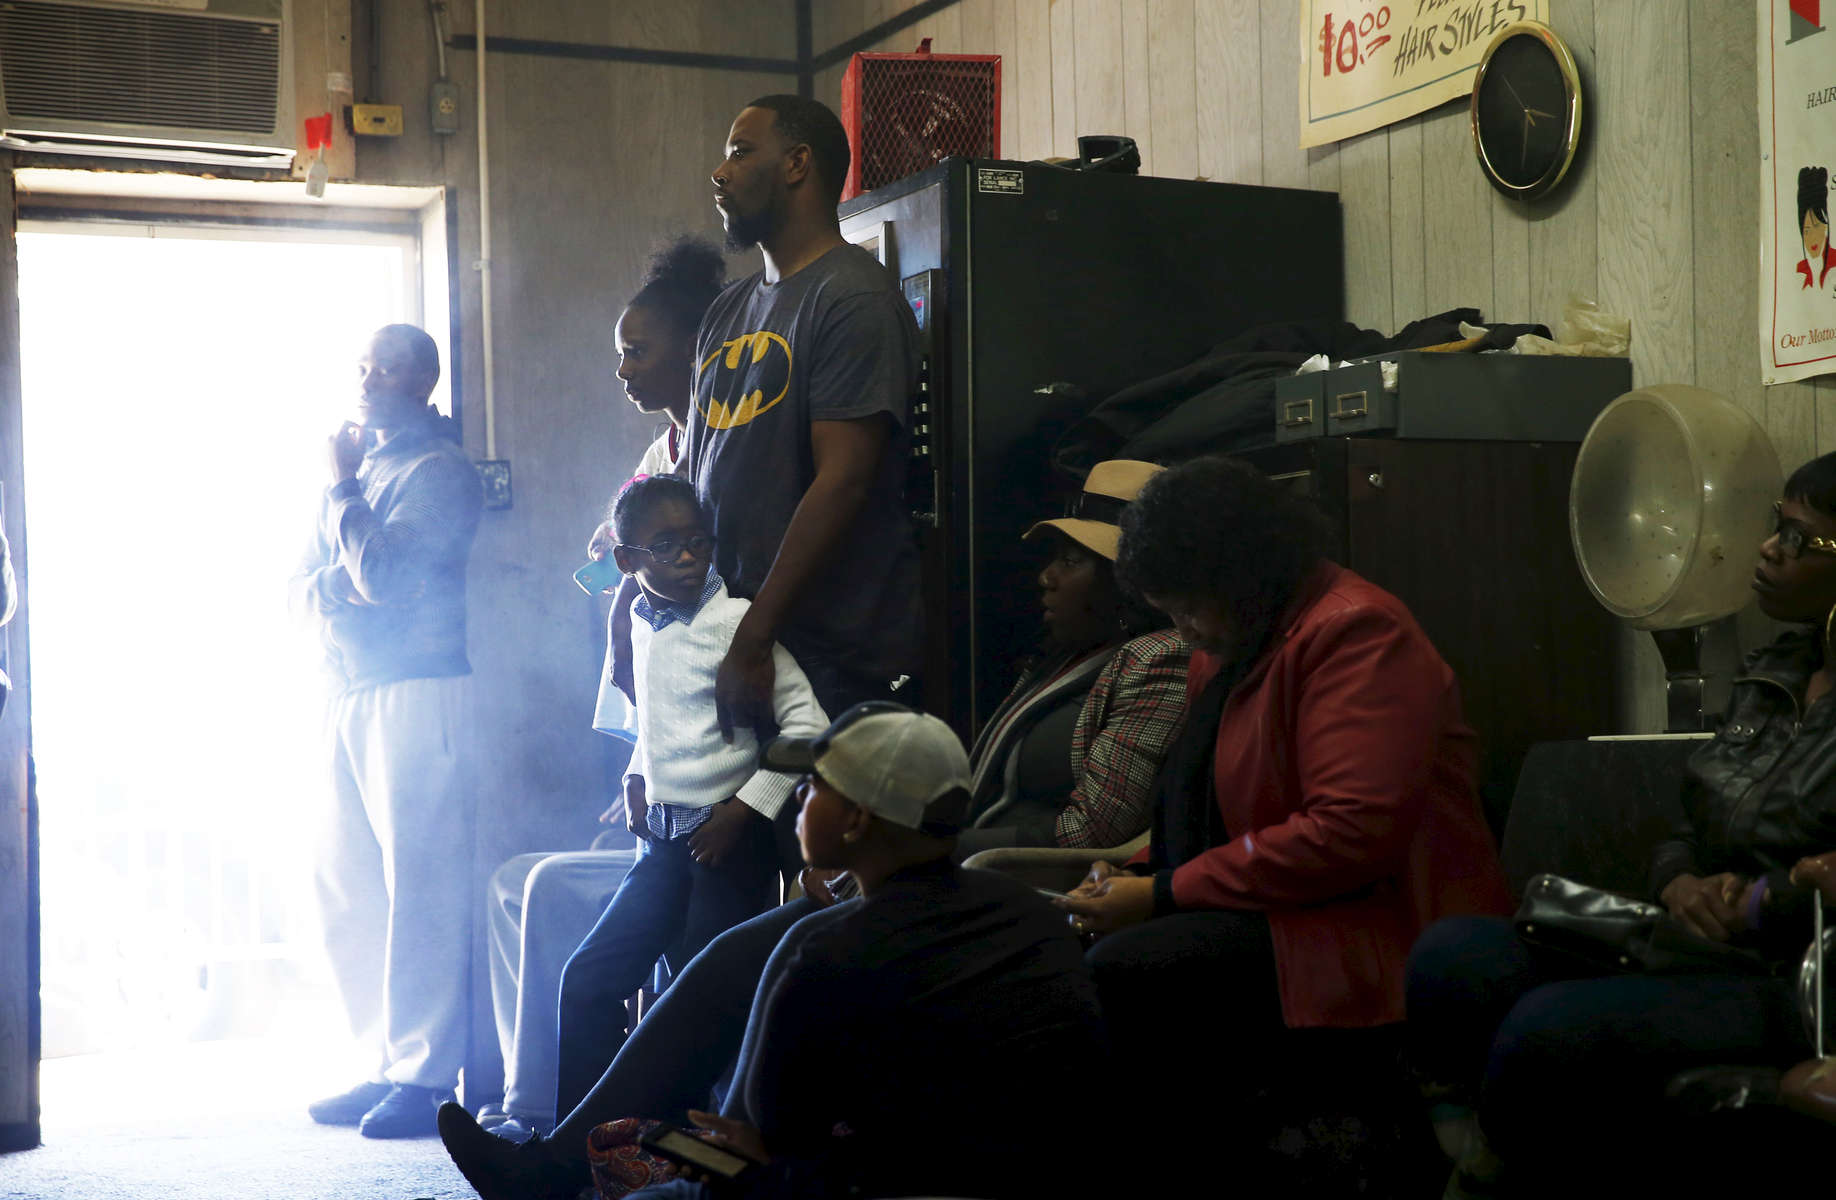 Selma, Alabama -- 3/07/2015-- People watch President Obama deliver a speech on a television set inside at Ray\'s Bar-B-Que Sandwich Shop which also doubles as a barber shop in Selma, Alabama March 7, 2015. Jessica Rinaldi/Globe StaffTopic: Reporter: